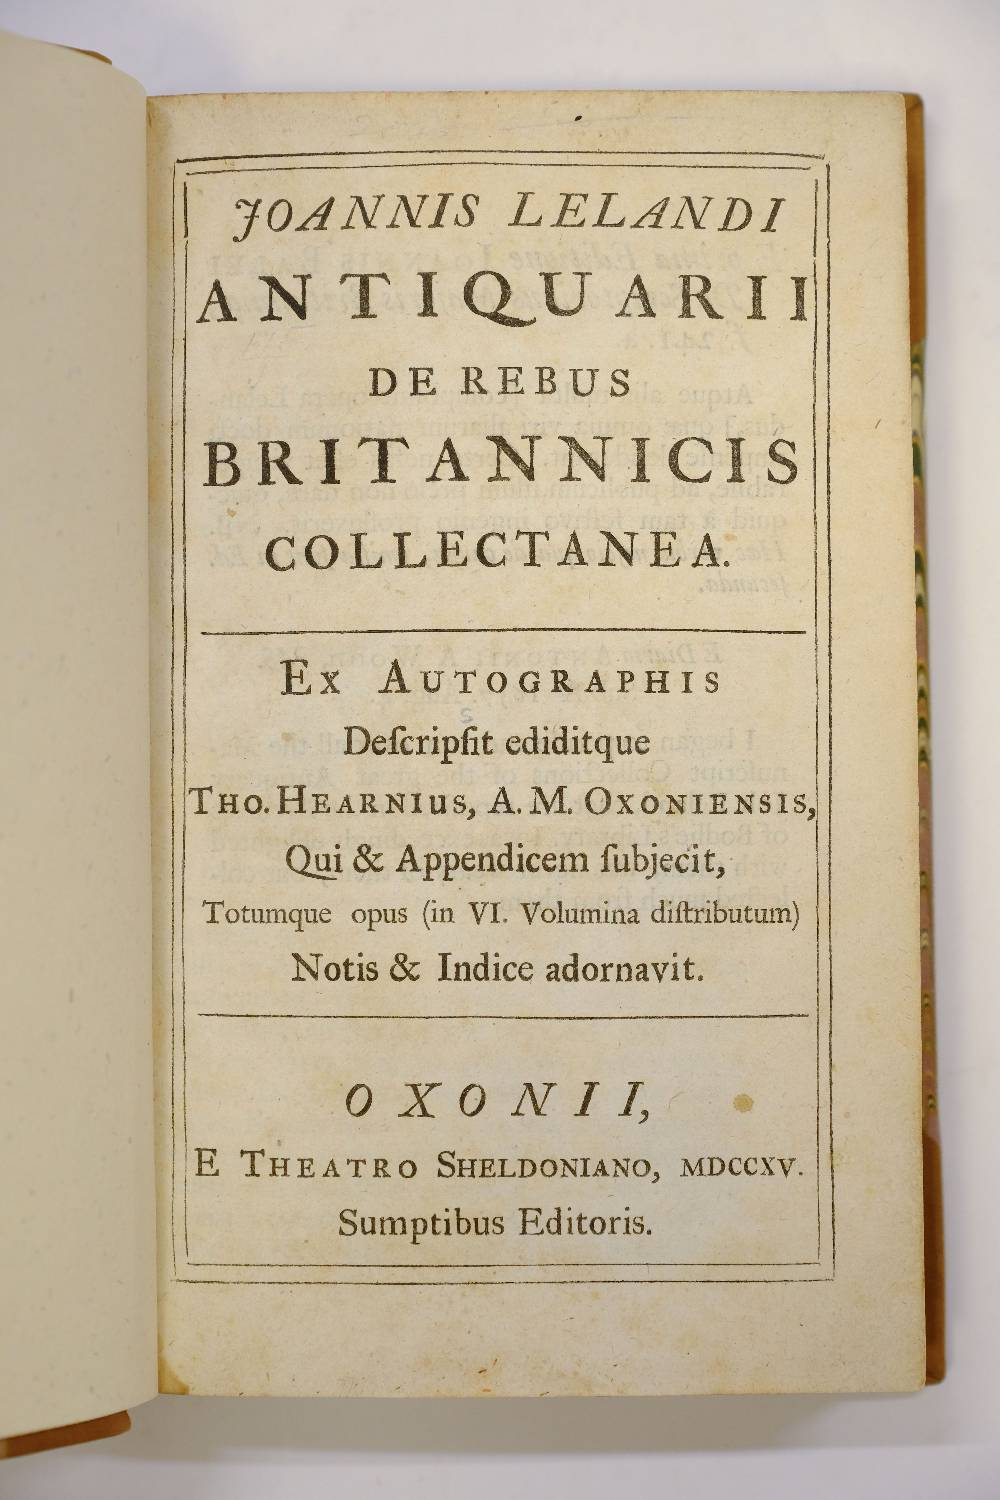 Lot 21 - Leland (John). De Rebus Britannicis Collectanea, 6 volumes, Oxford, 1715, folding engraved plates,